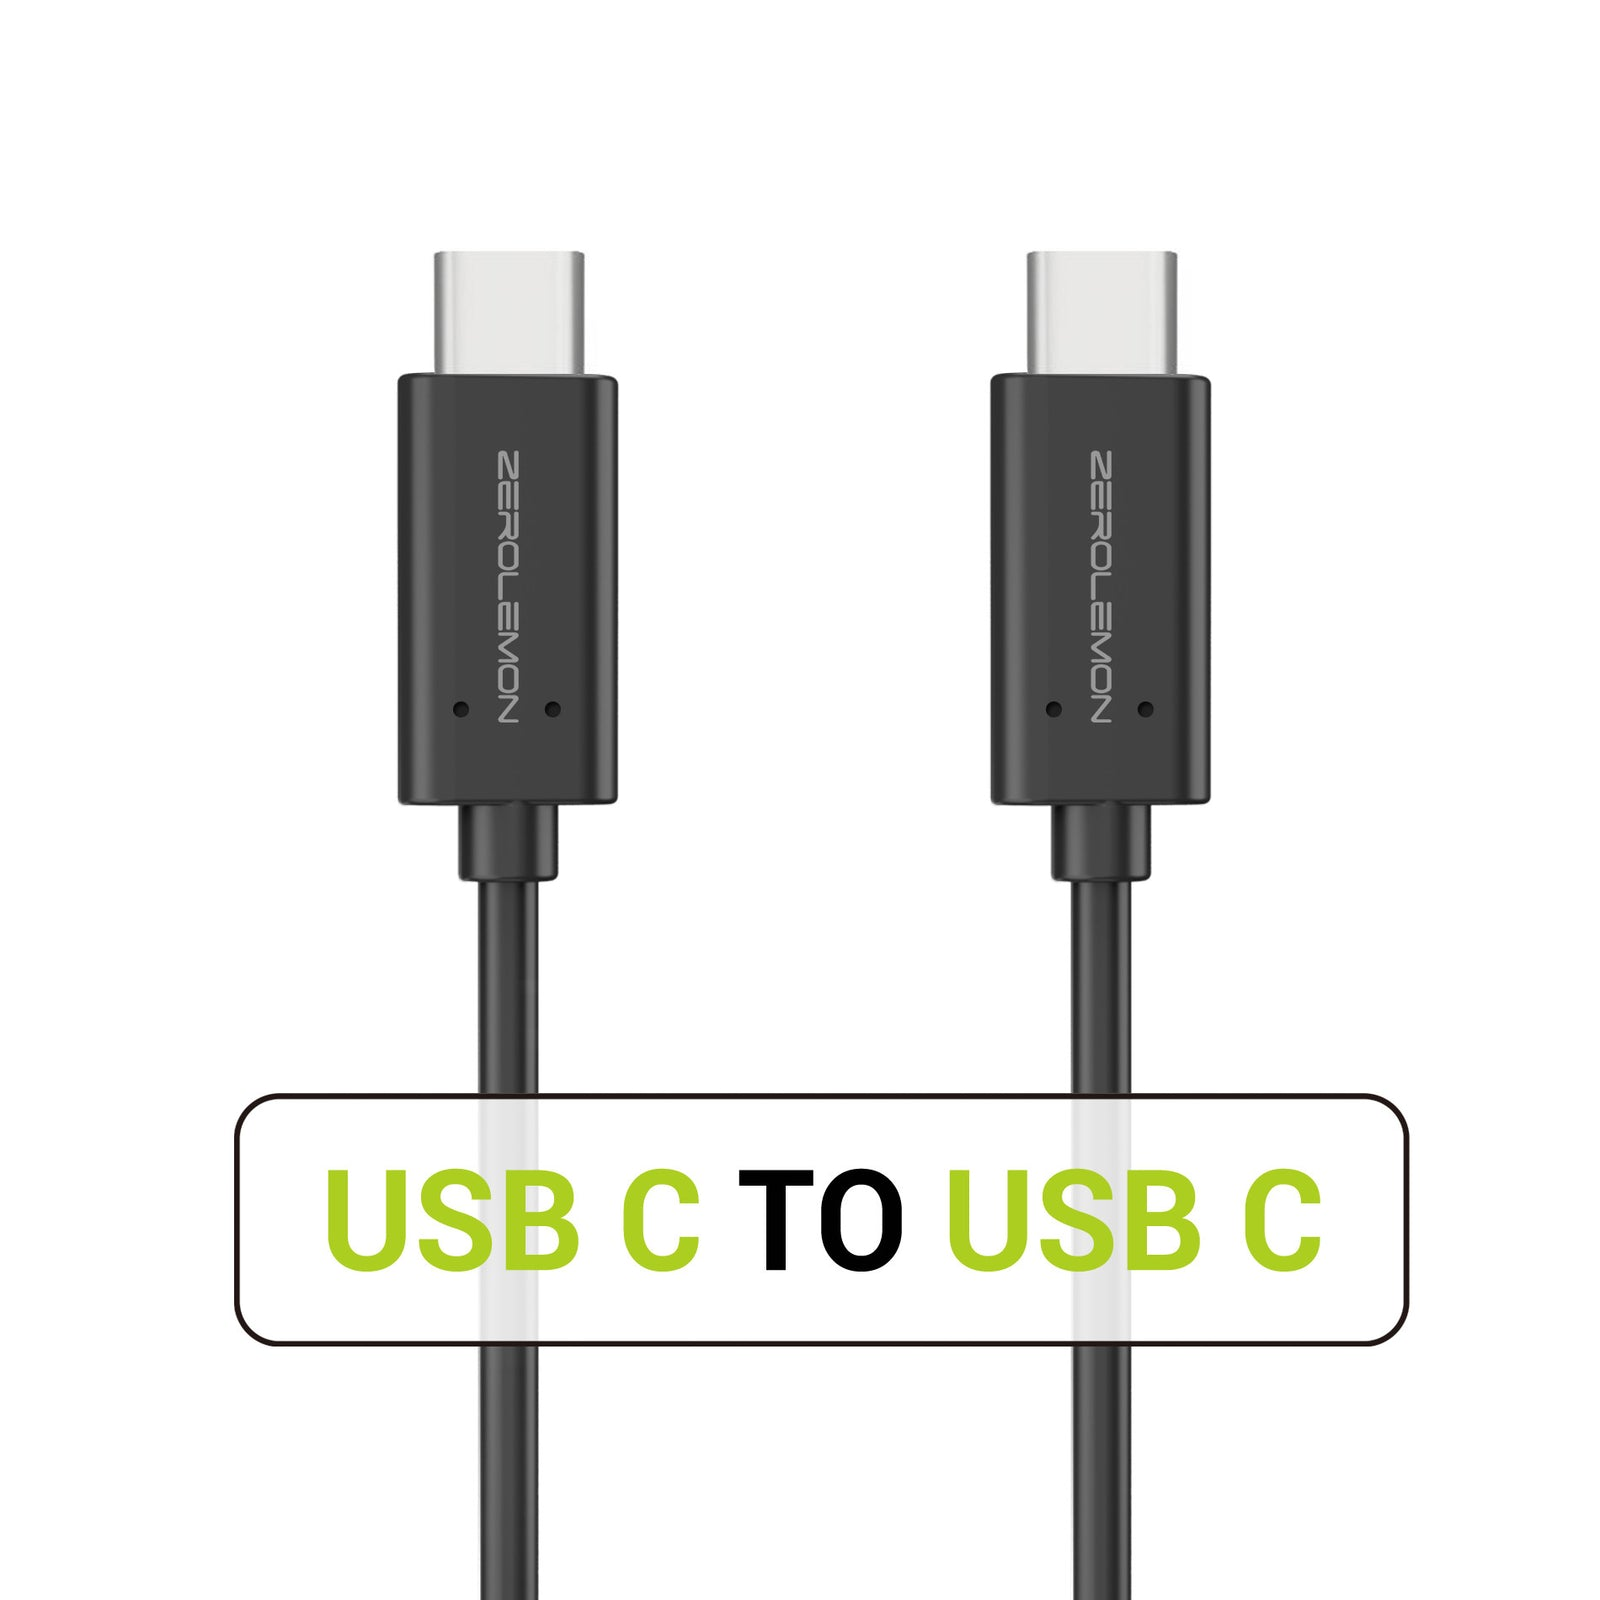 USB 3.1 USB C to USB C 10 Gbps Super Speed Charge and Sync Cable 3.2FT [Shipping to US Only]